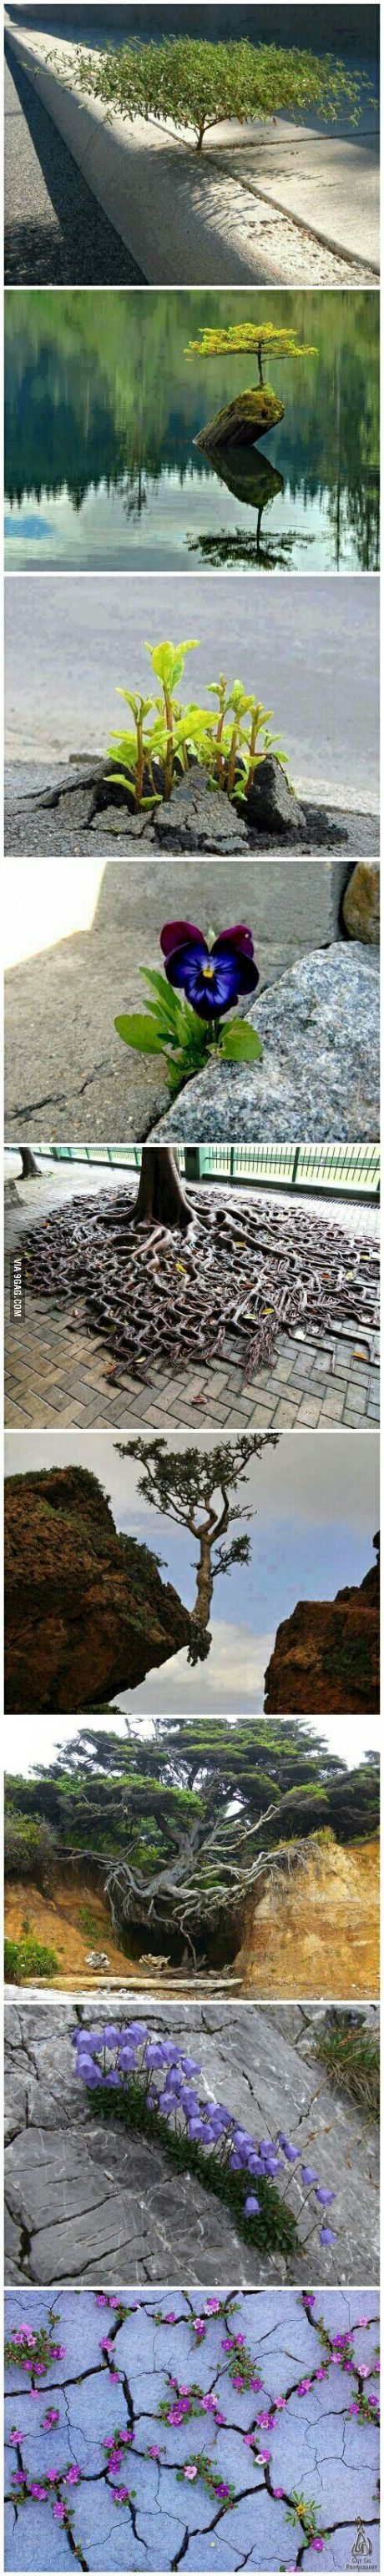 Nature always finds a way.